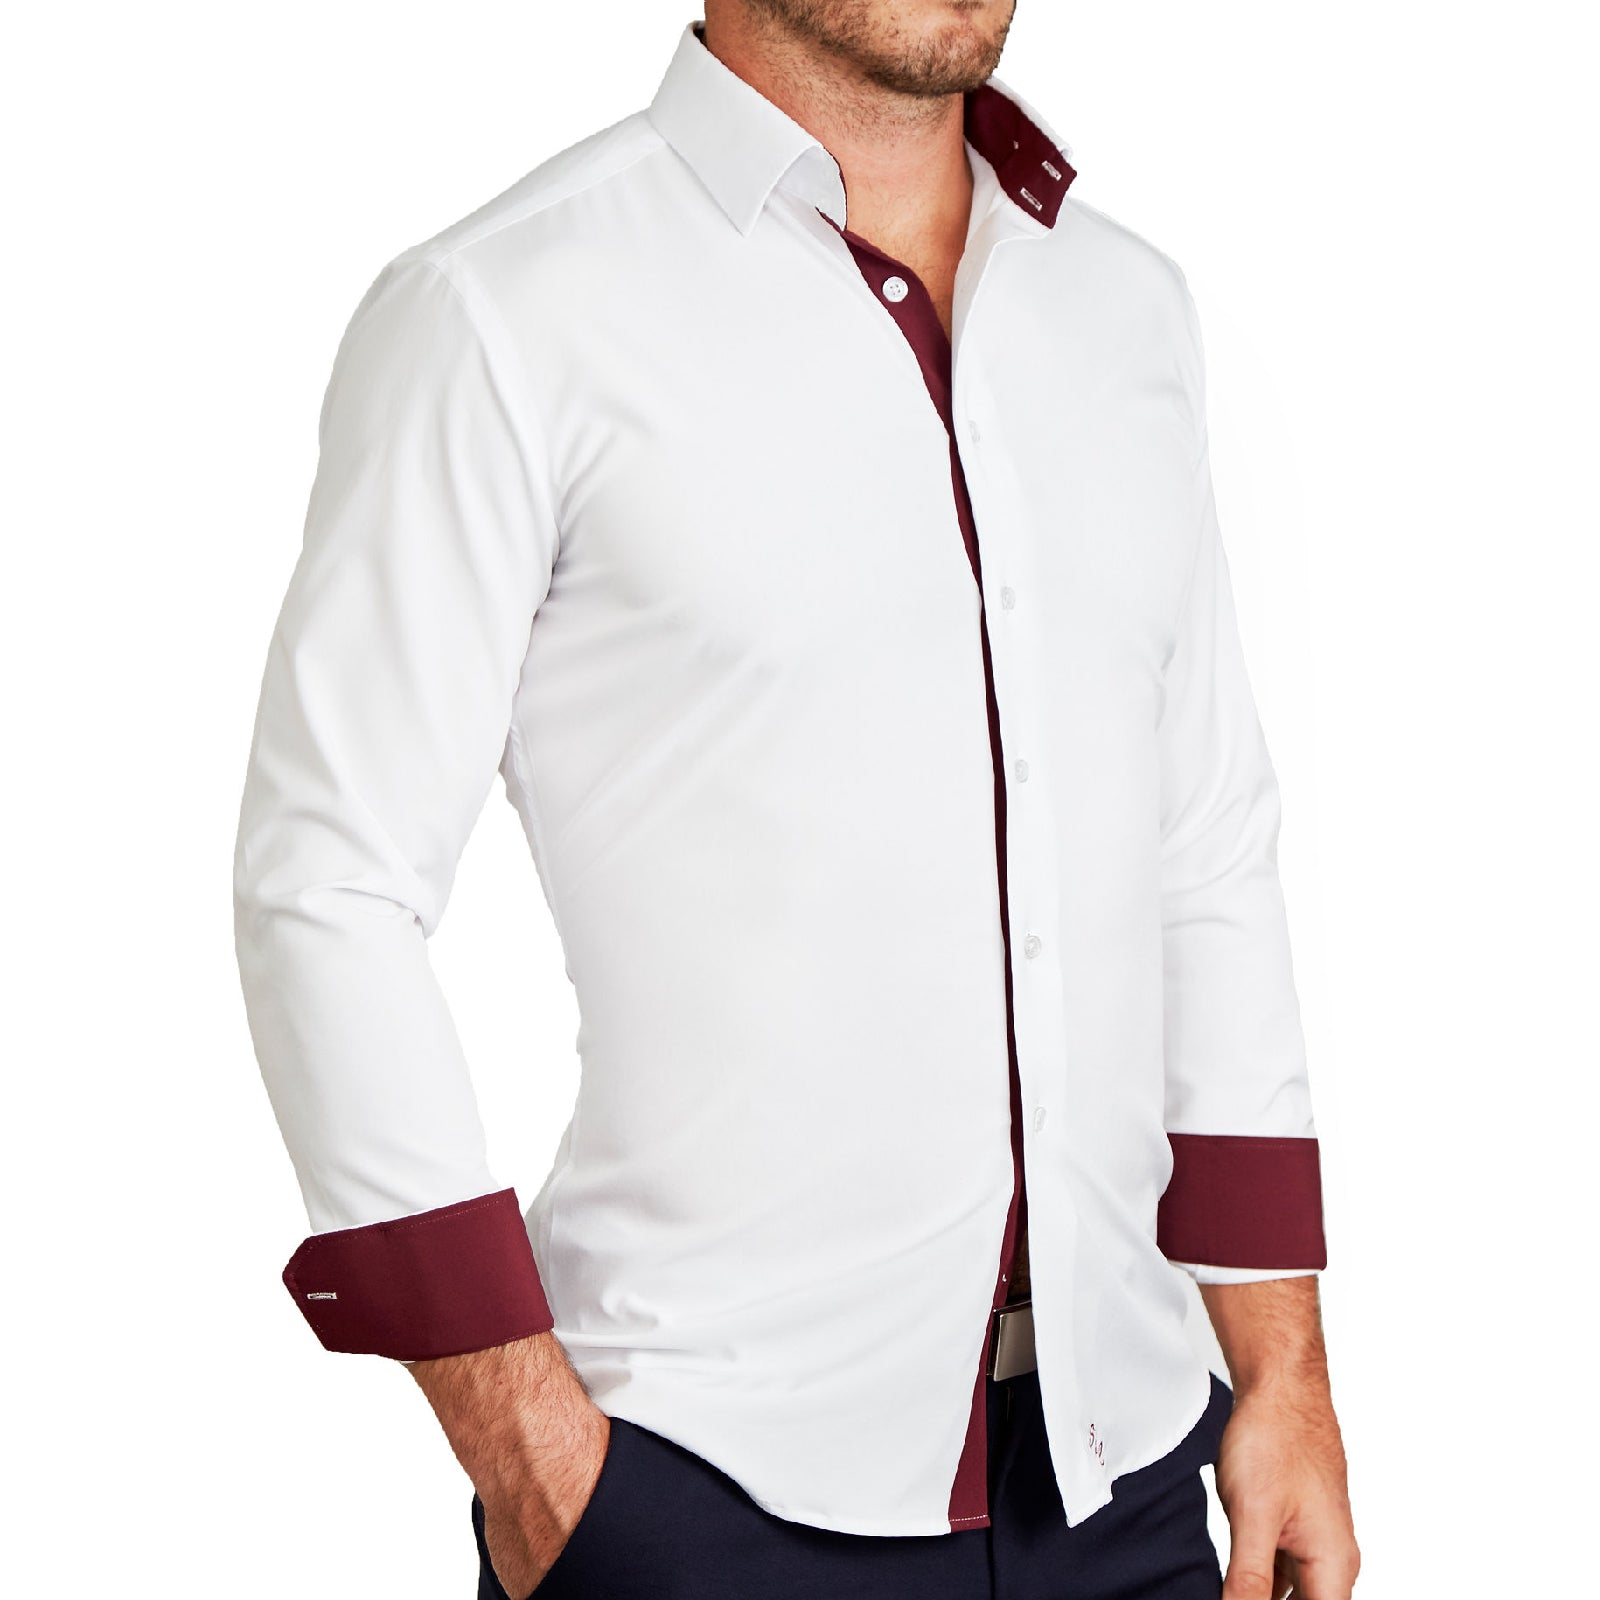 da4c1297943e Athletic Fit Dress Shirts Tagged